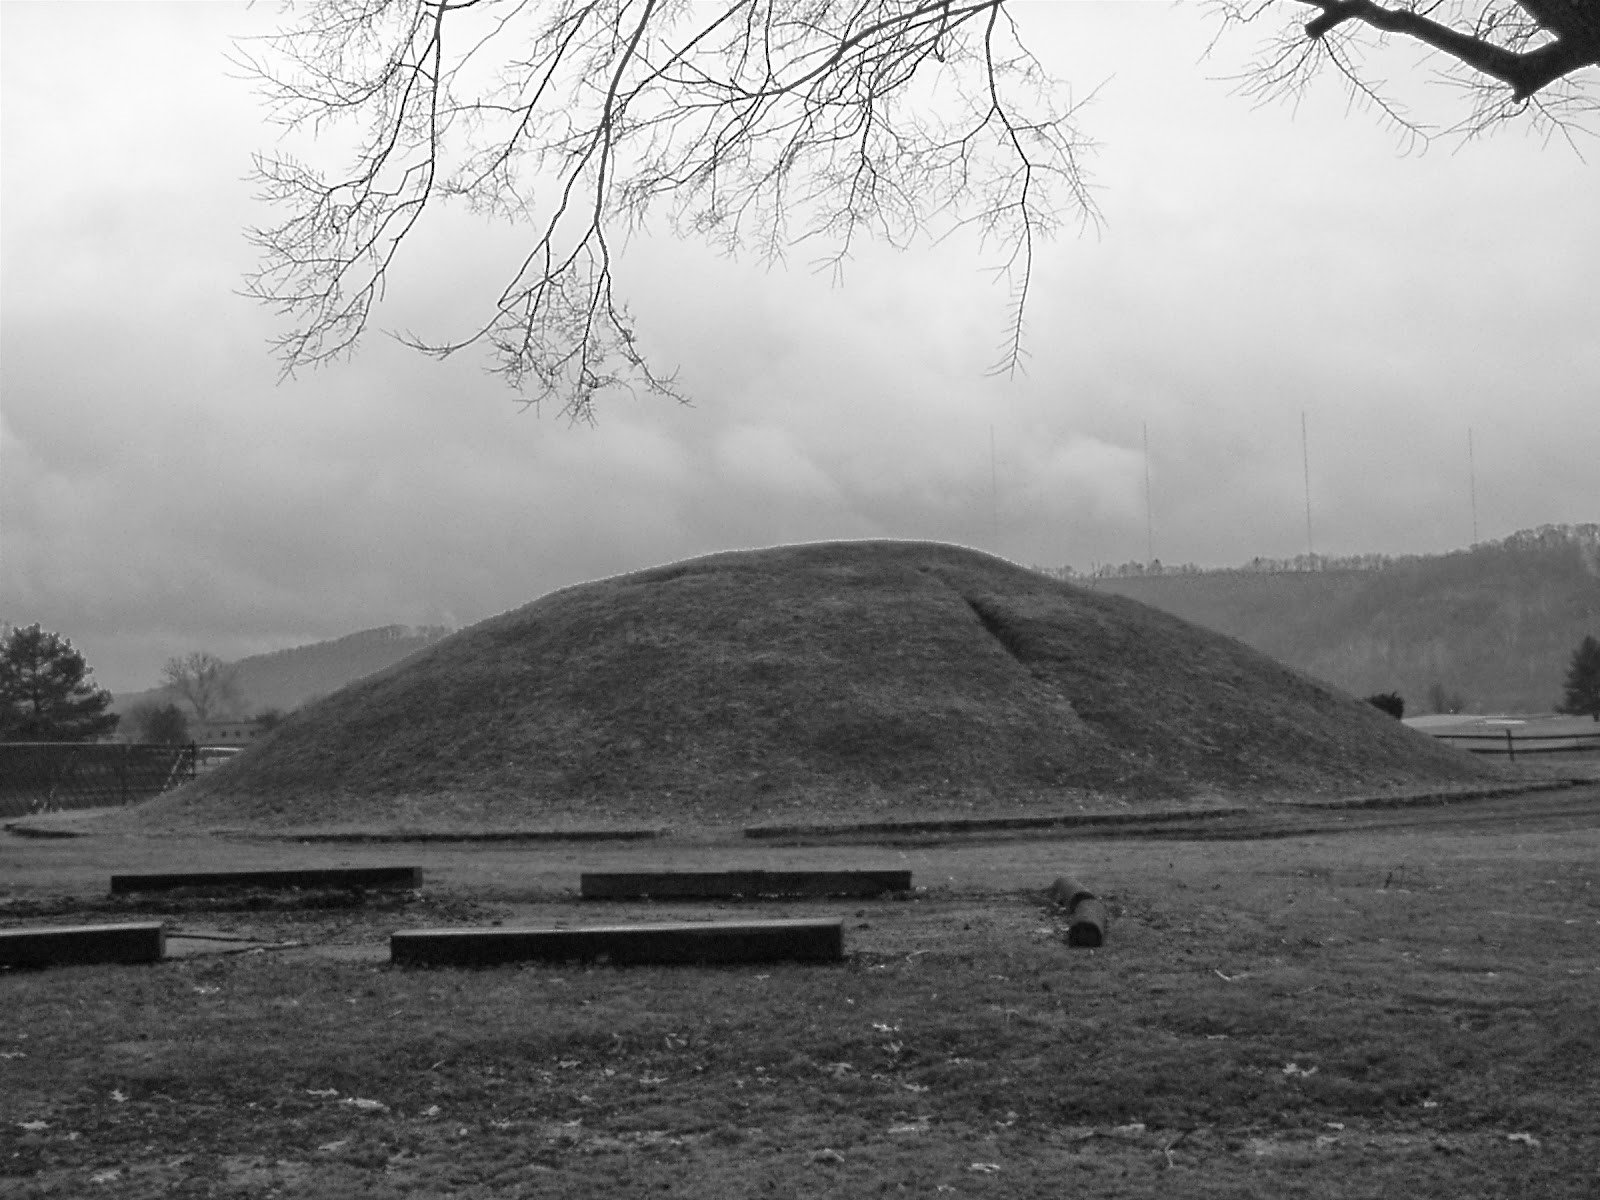 Adena burial mound located in Shawnee Park, in Dunbar, West Virginia. 1953